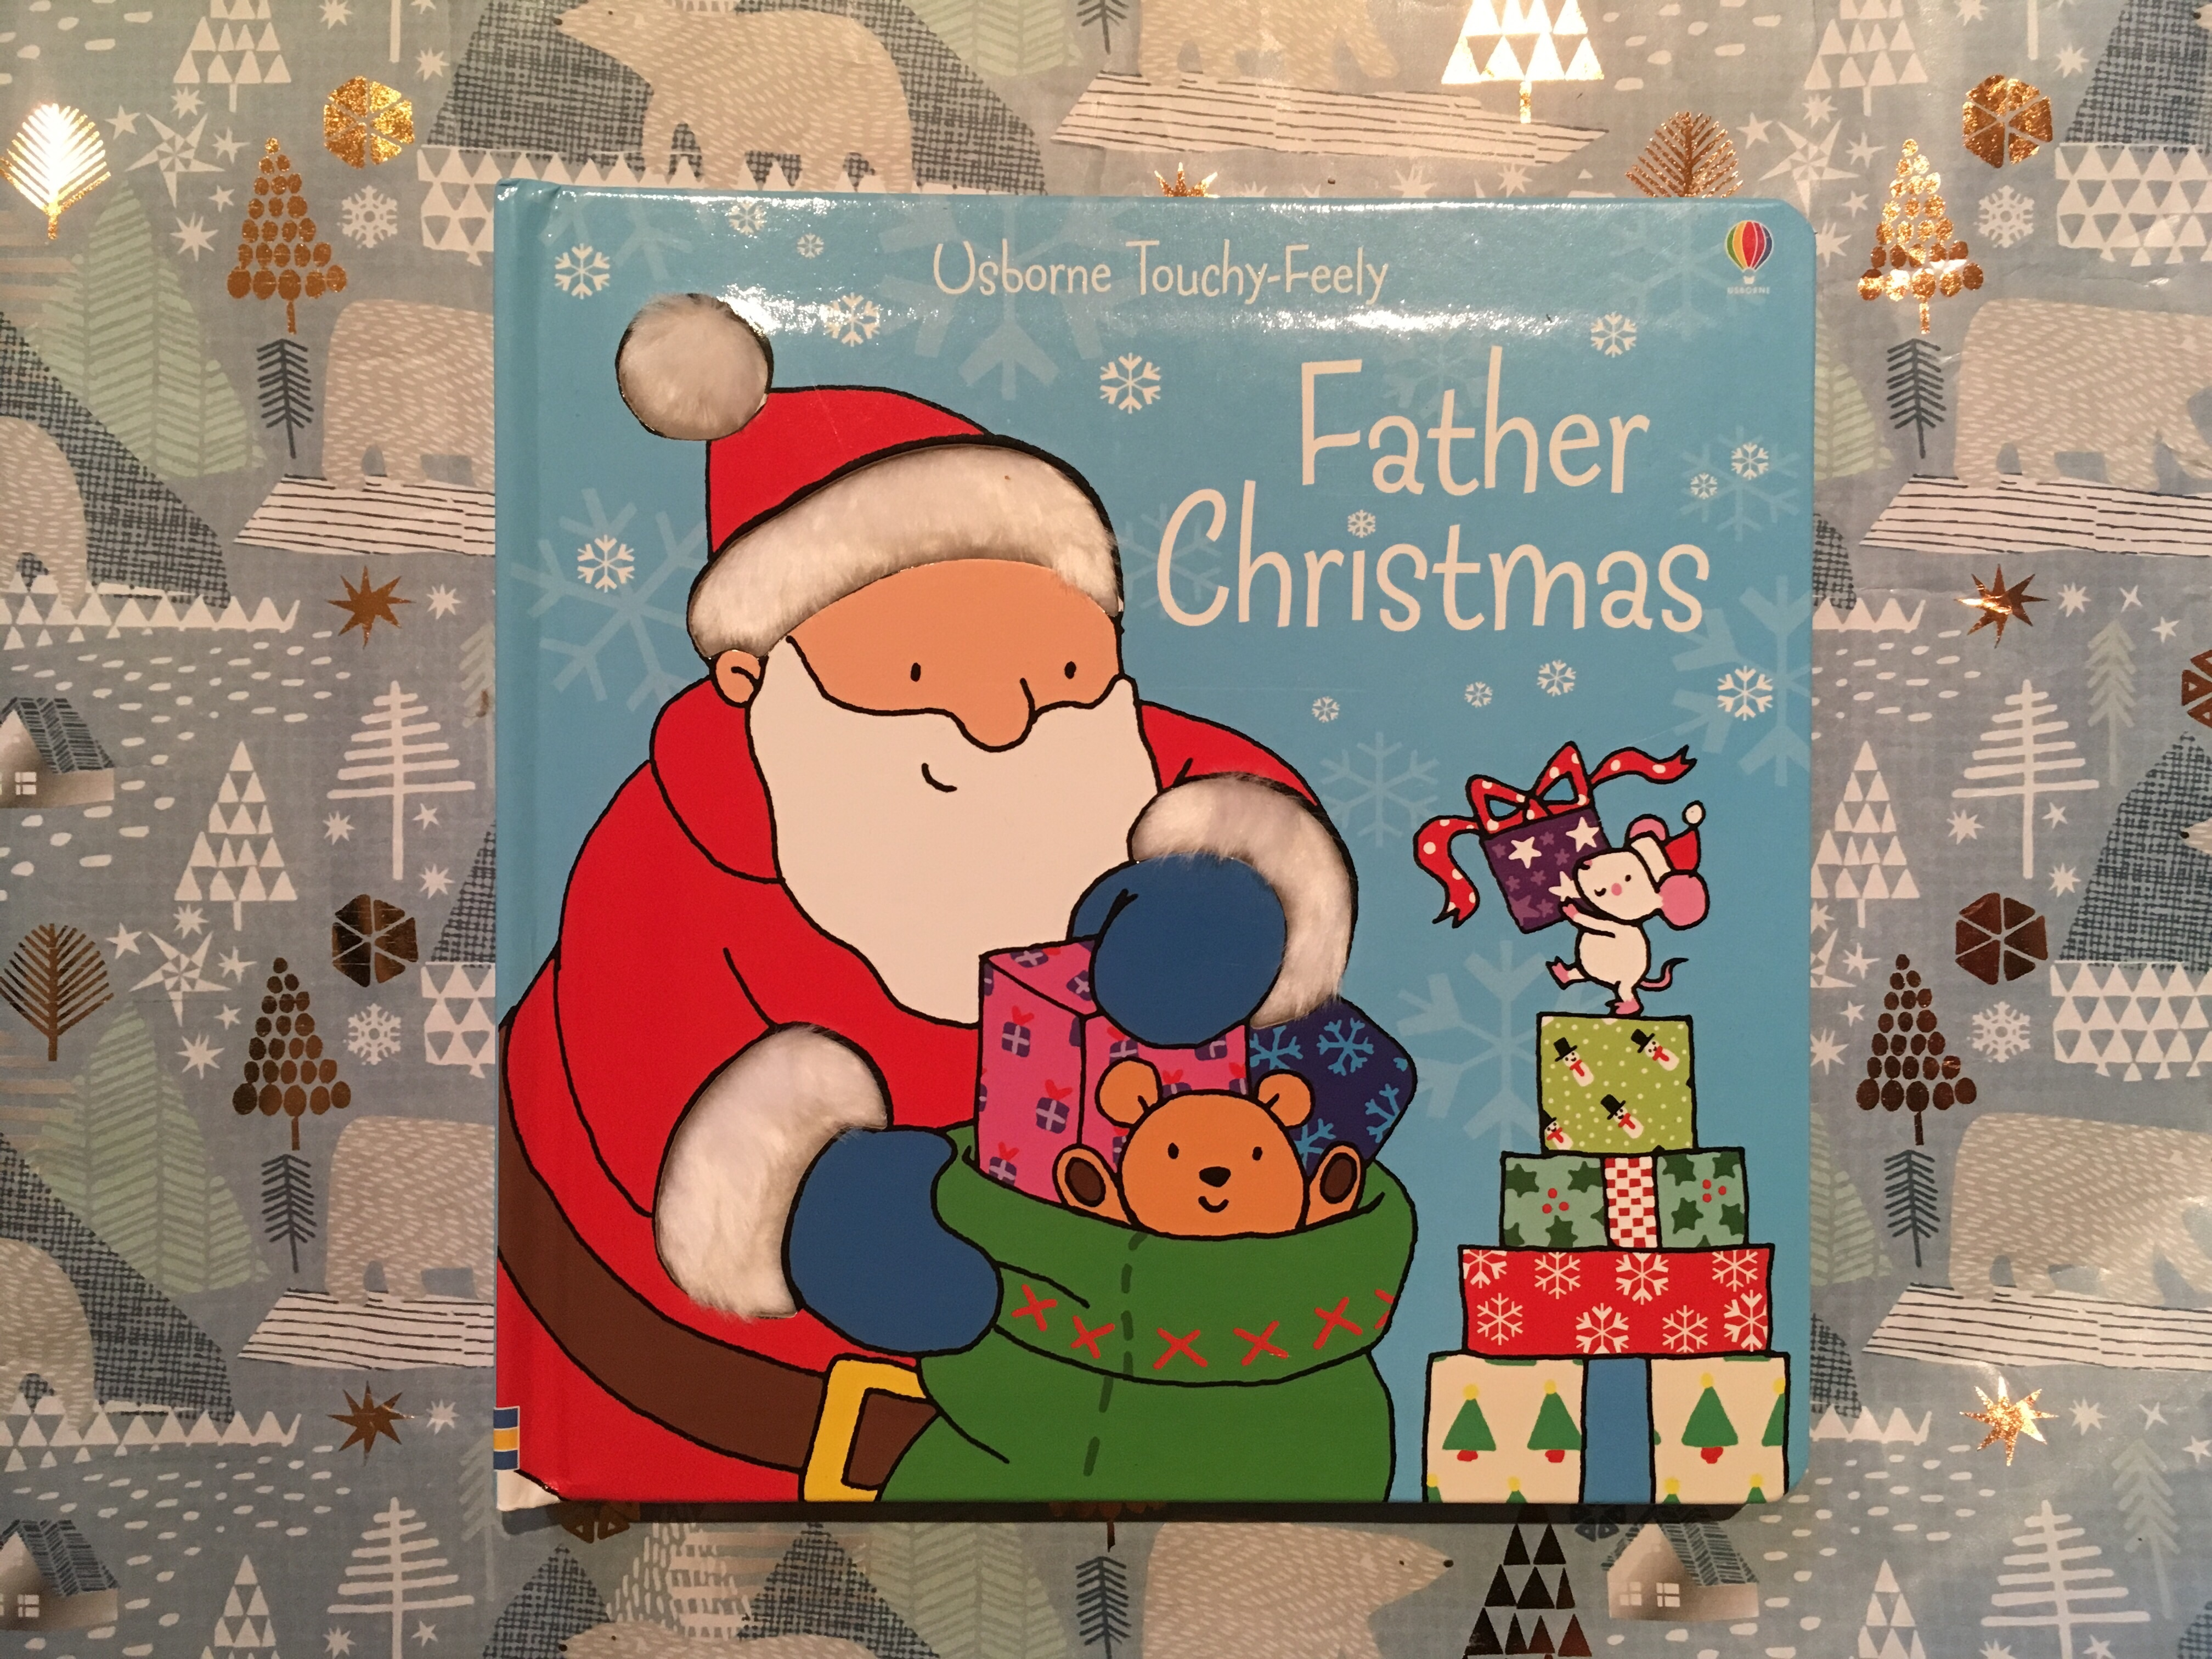 Usborne Touchy-Feely Father Christmas